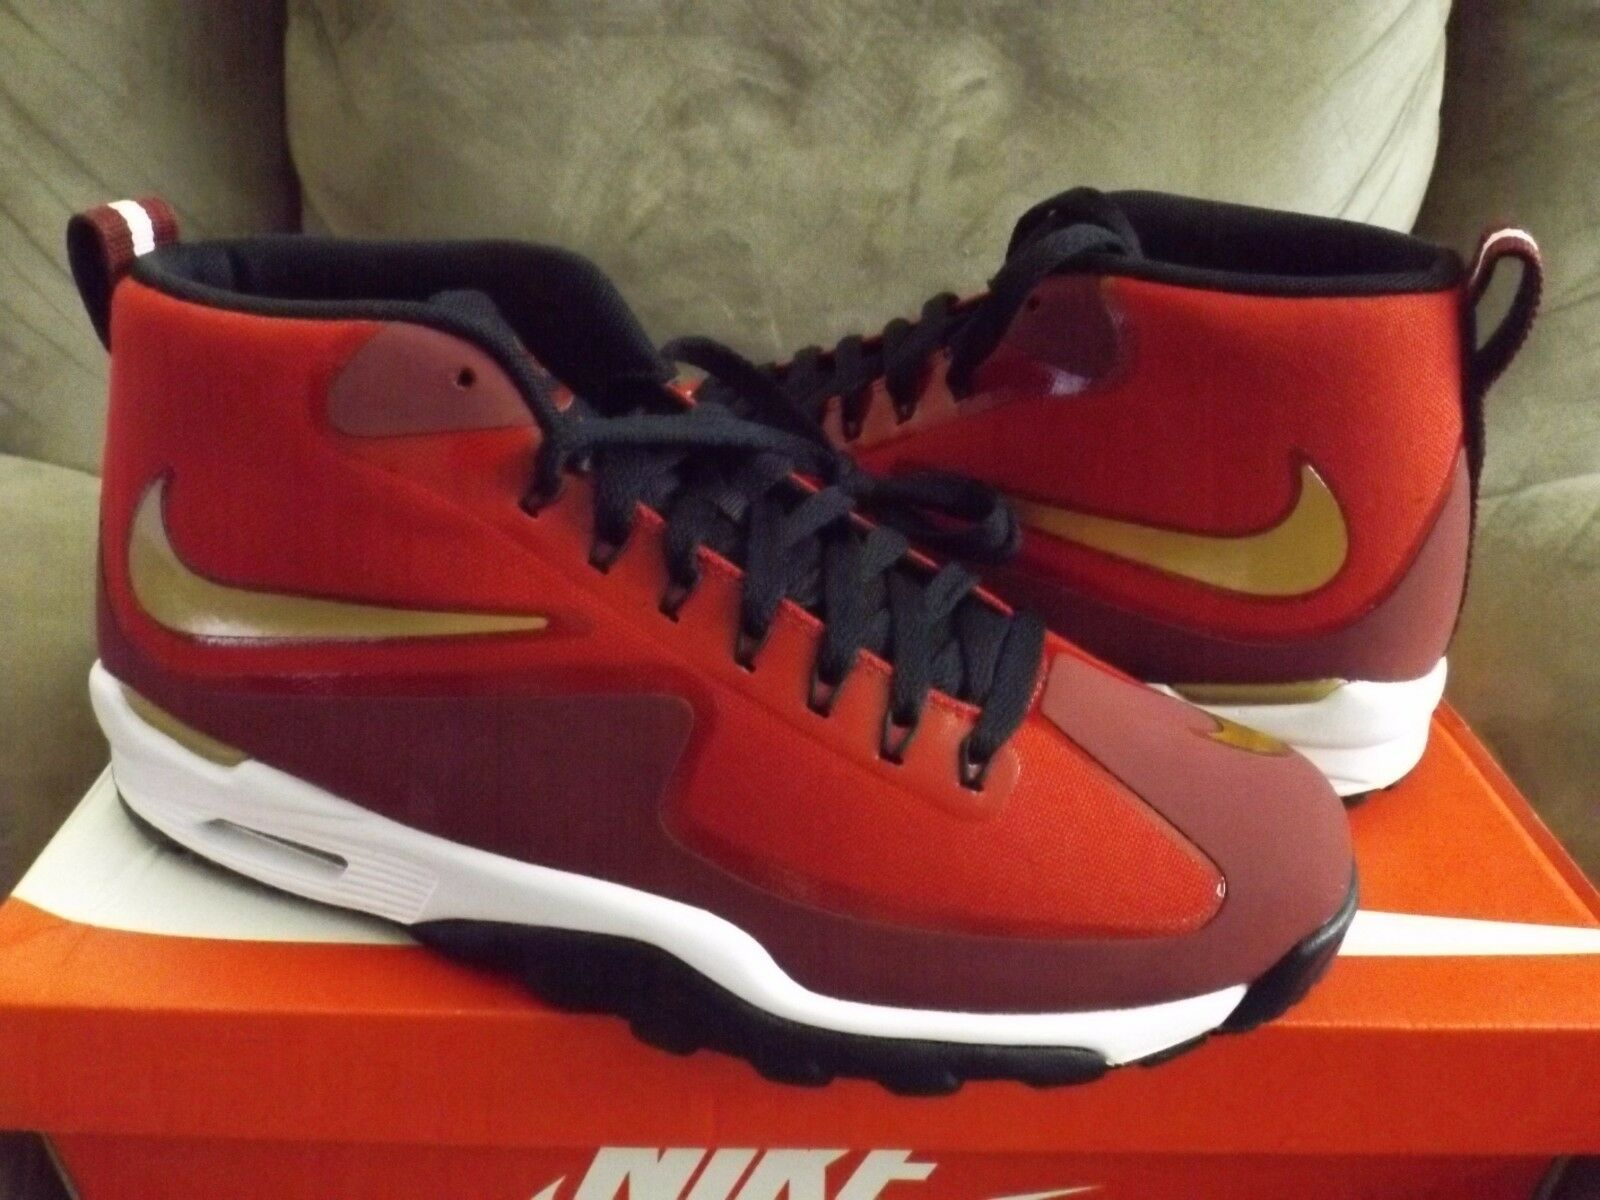 Nike Air Untouchable Vapor Men's shoes Gym Red gold Red White 807164-600 (NEW)